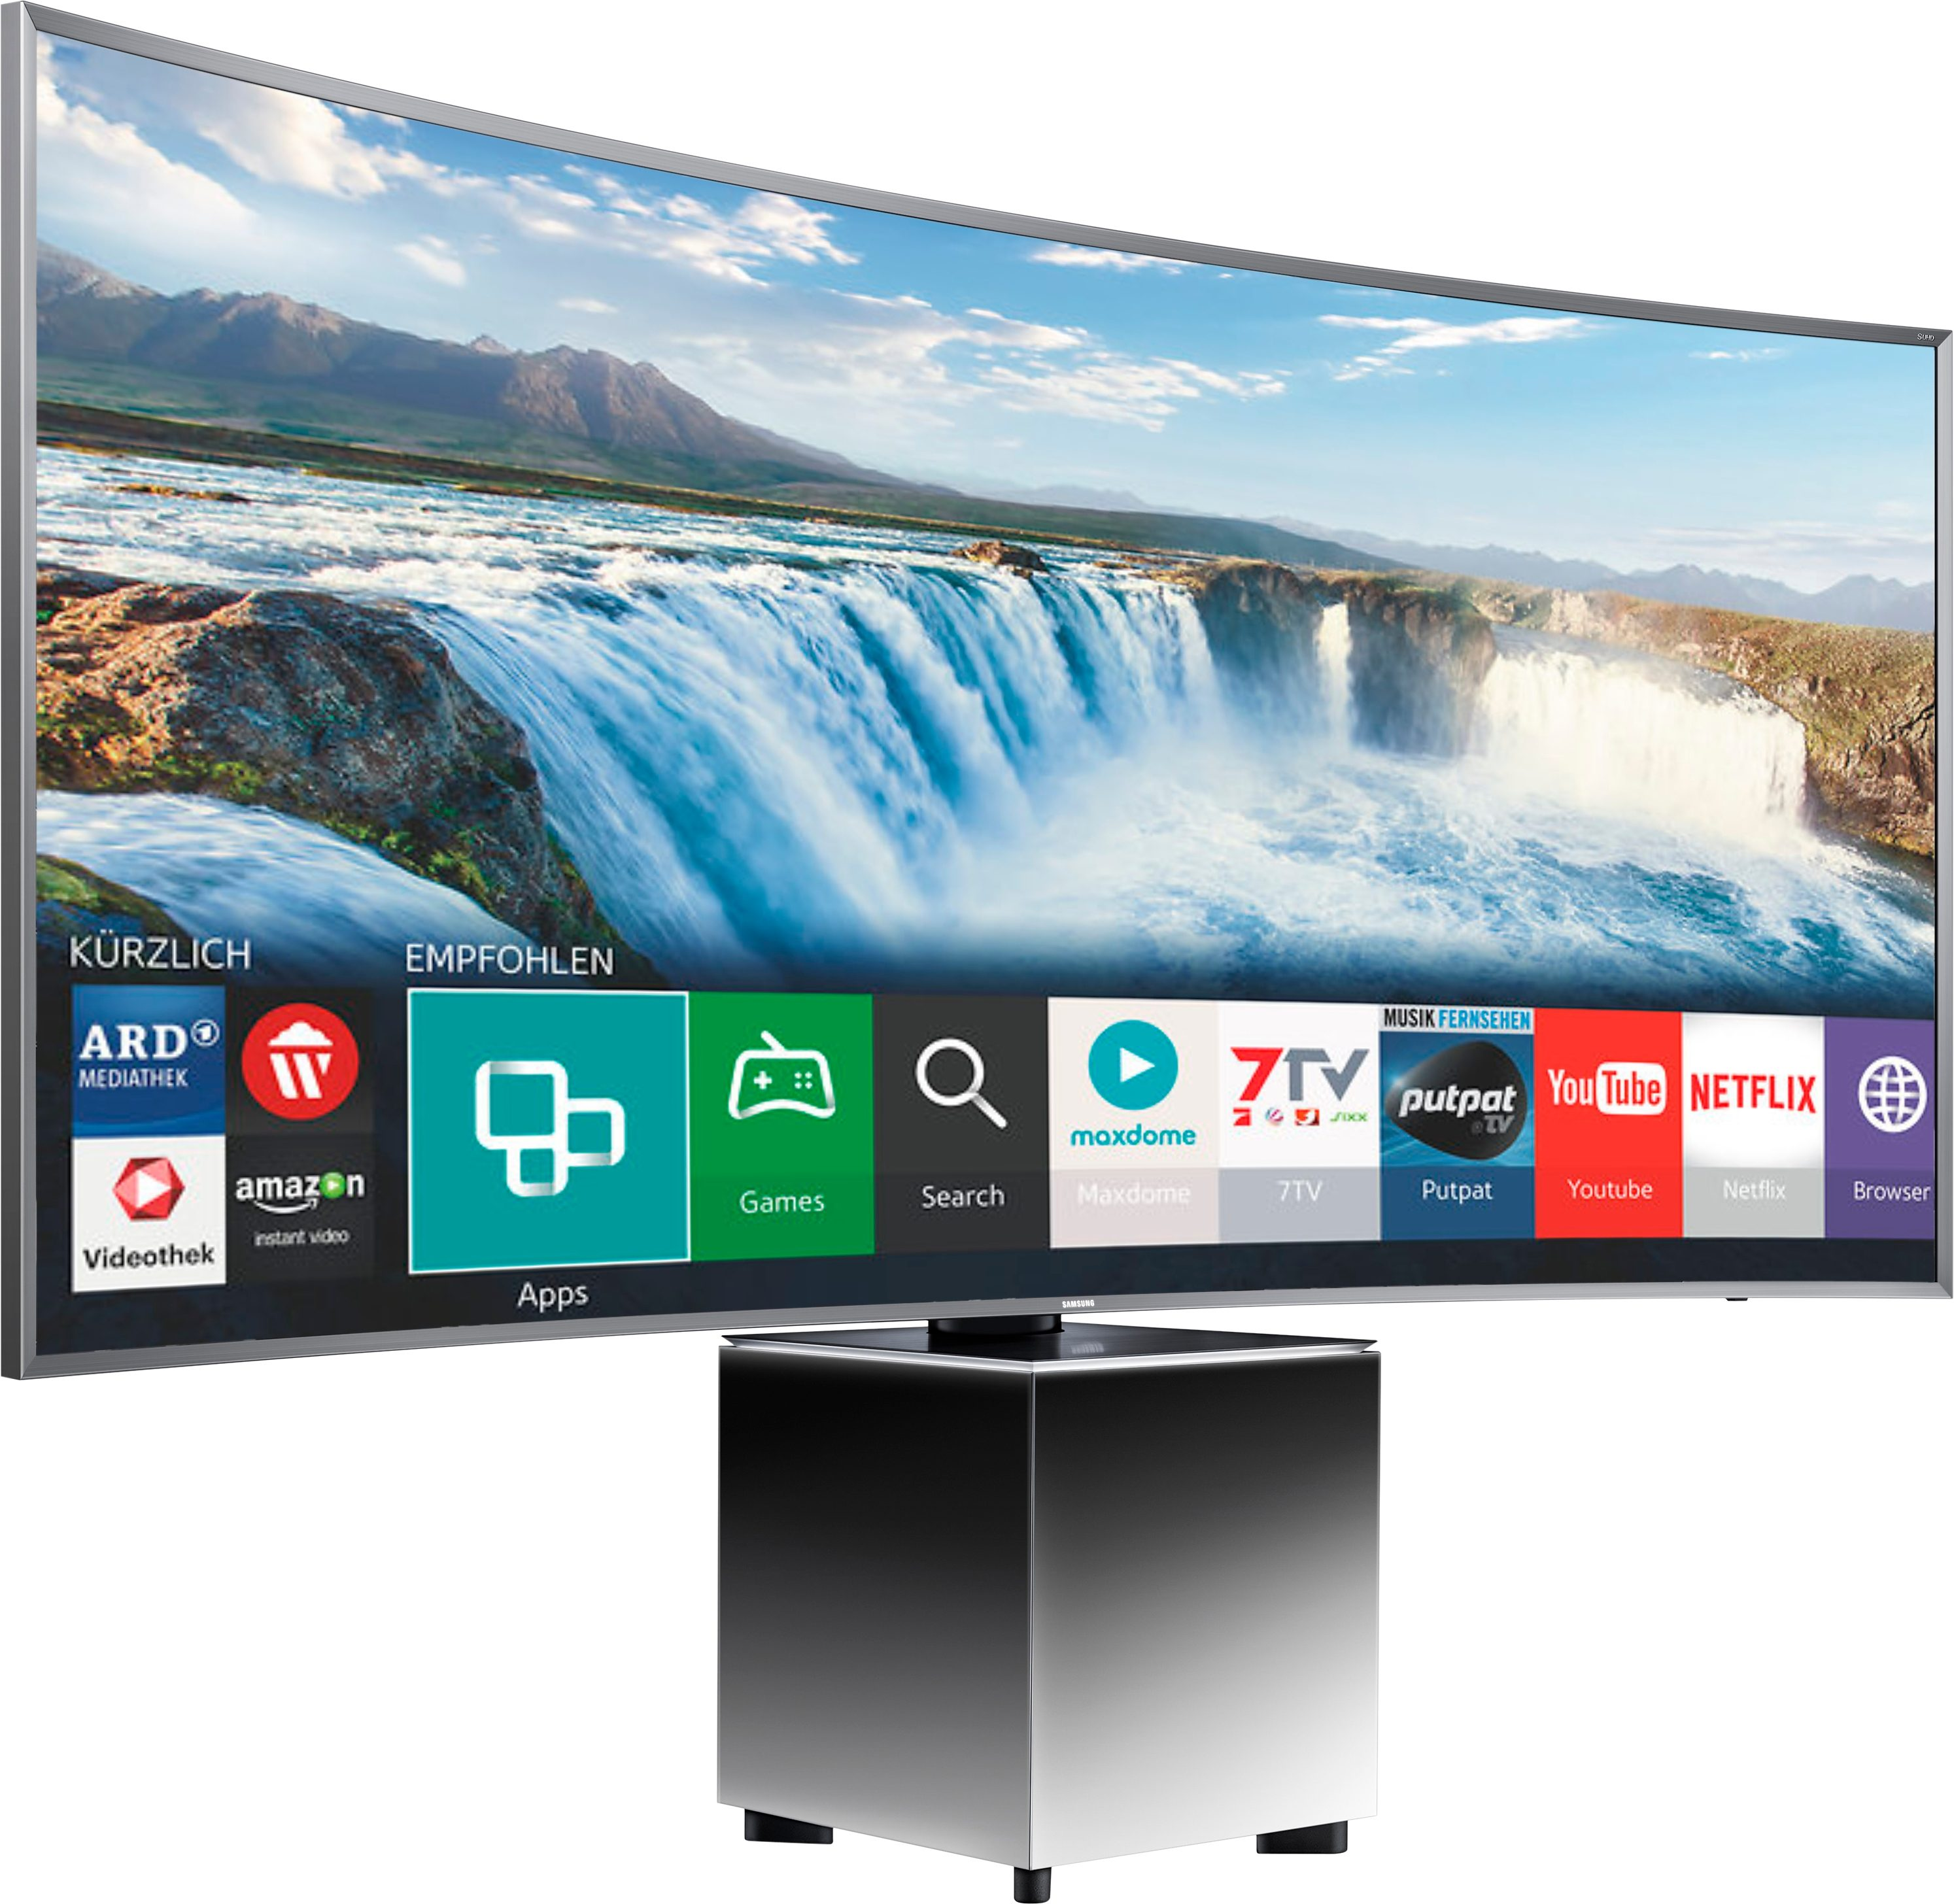 Samsung UE82S59, Curved-LED-Fernseher, 207 cm (82 Zoll), 2160p (SUHD), Smart-TV